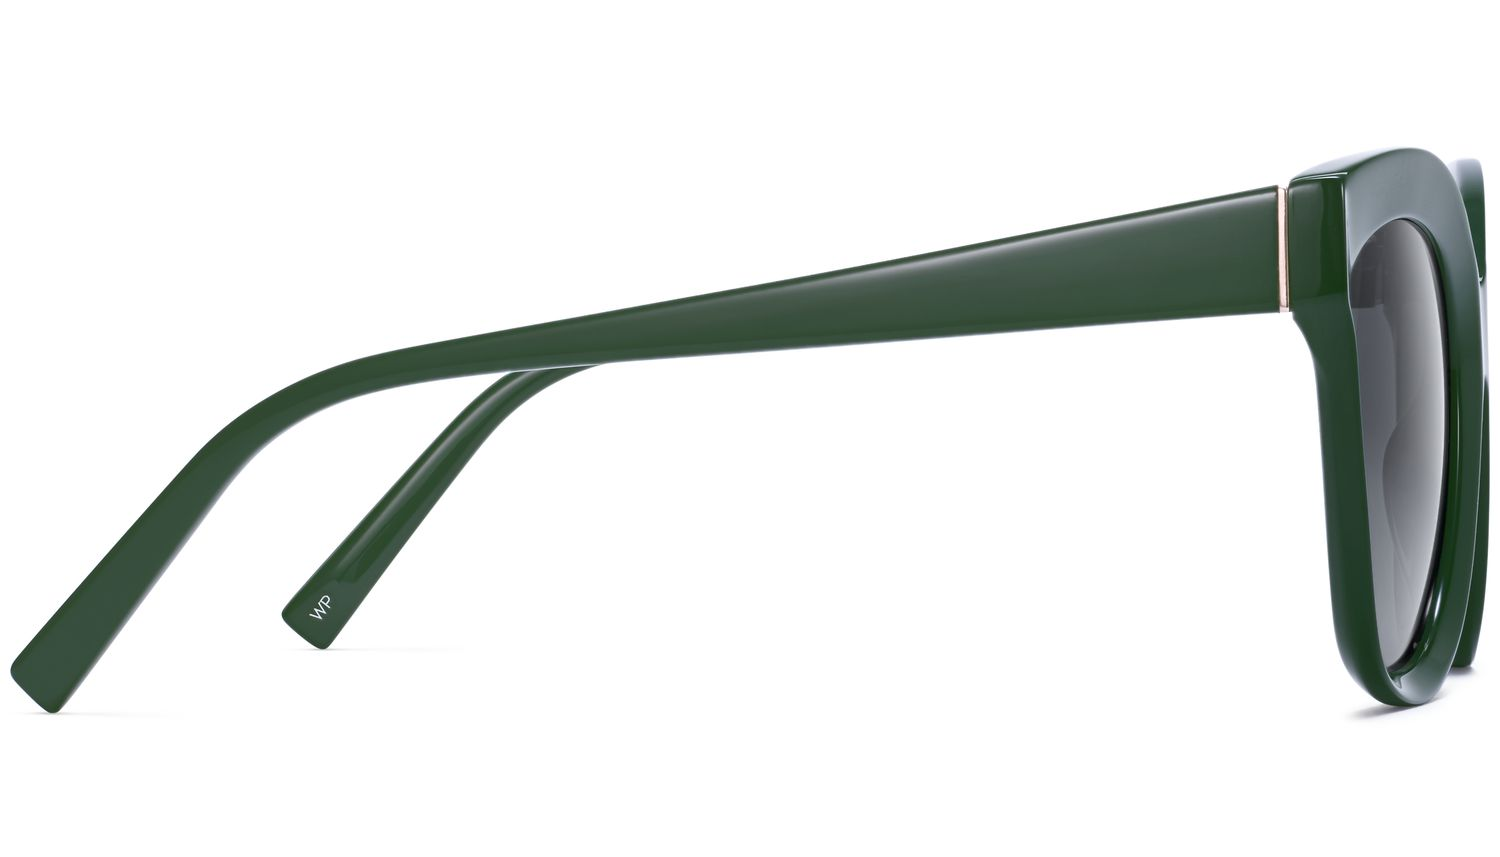 Side View Image of Ada Sunglasses Collection, by Warby Parker Brand, in Forest Green Color